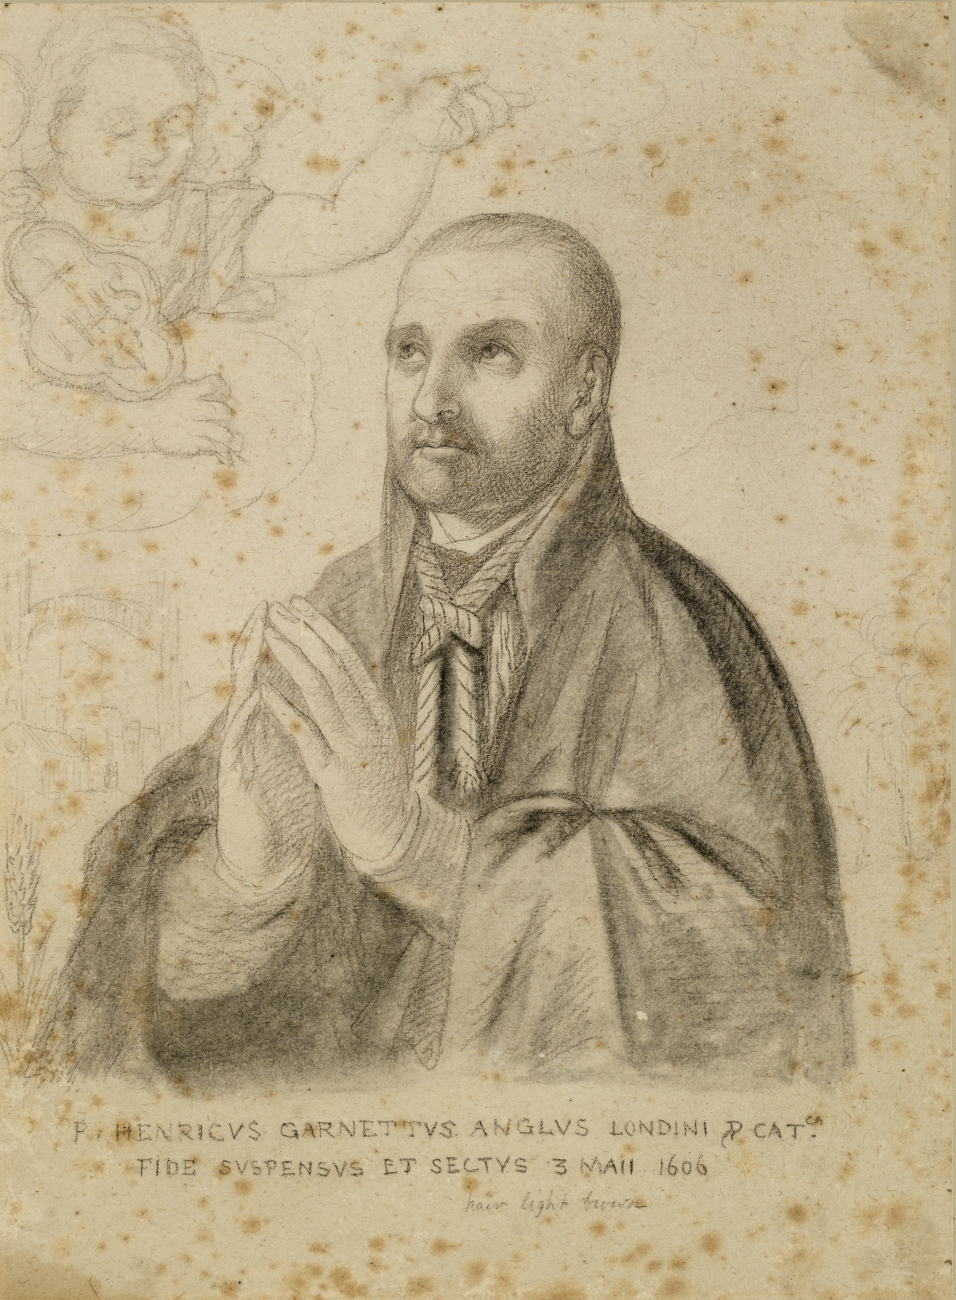 Sketch of a man with hands together in prayer, with a rope around his neck, looking up to an angel